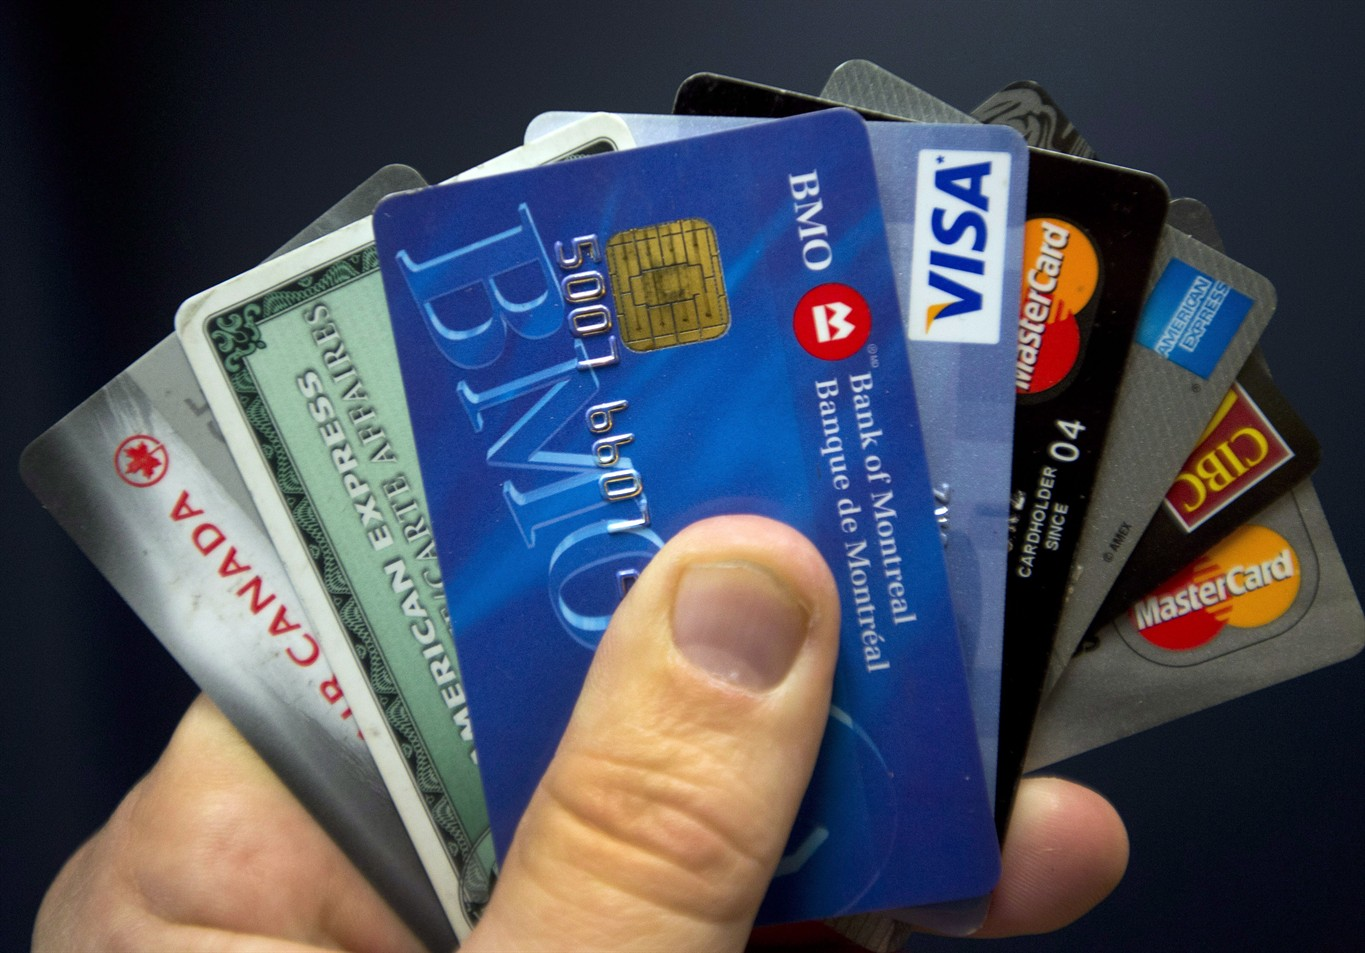 3 Toronto men charged in credit card fraud near Belleville - 680 NEWS